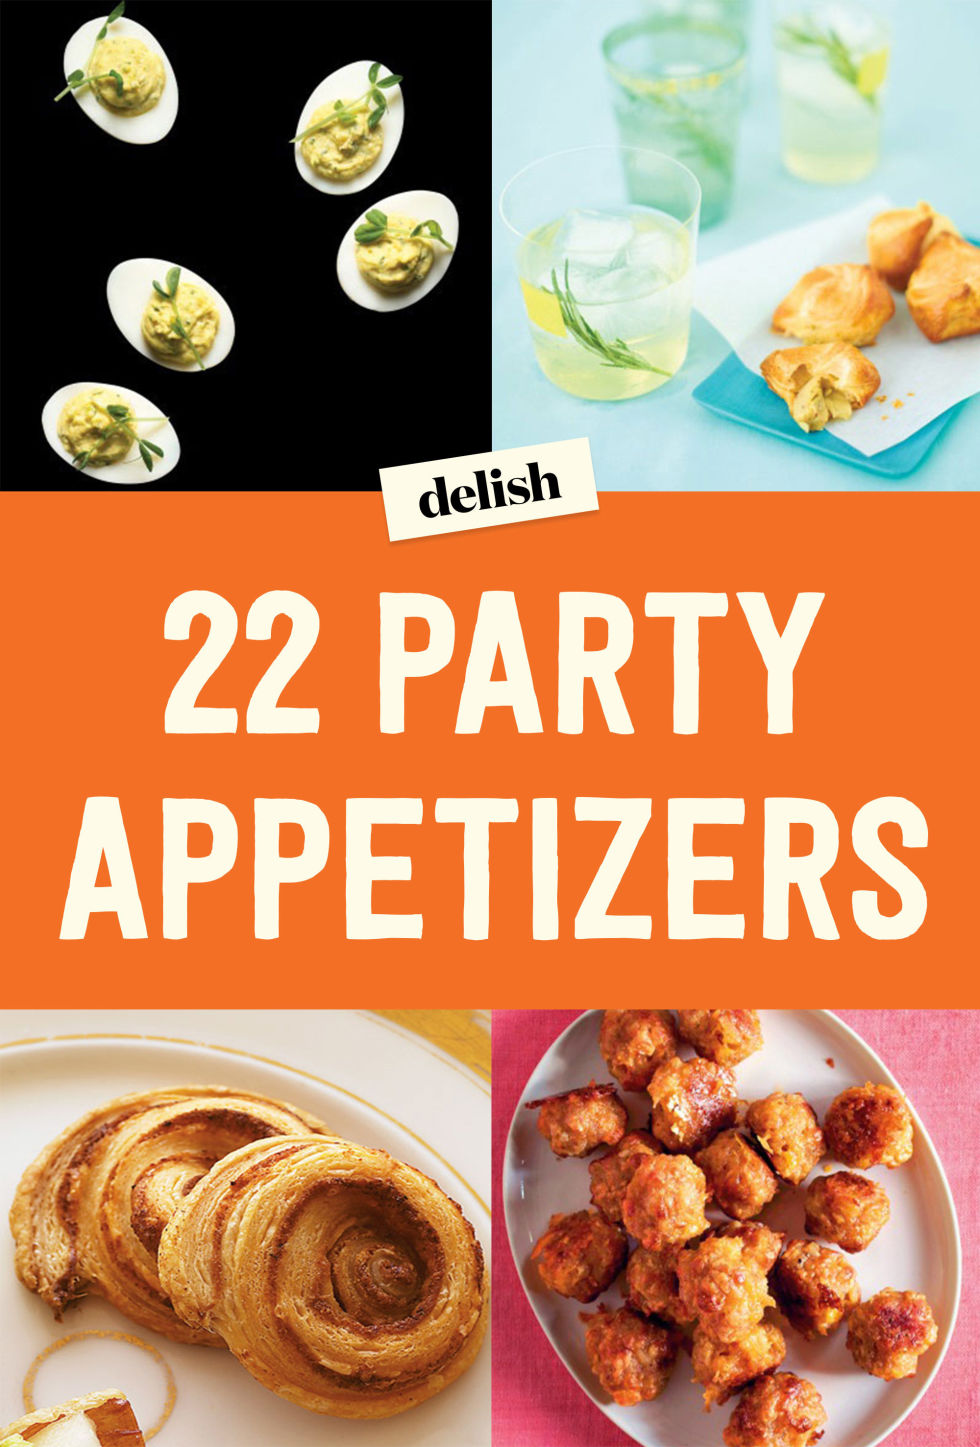 82 appetizer recipes with pictures and procedures hot for Easy cocktail recipes for parties